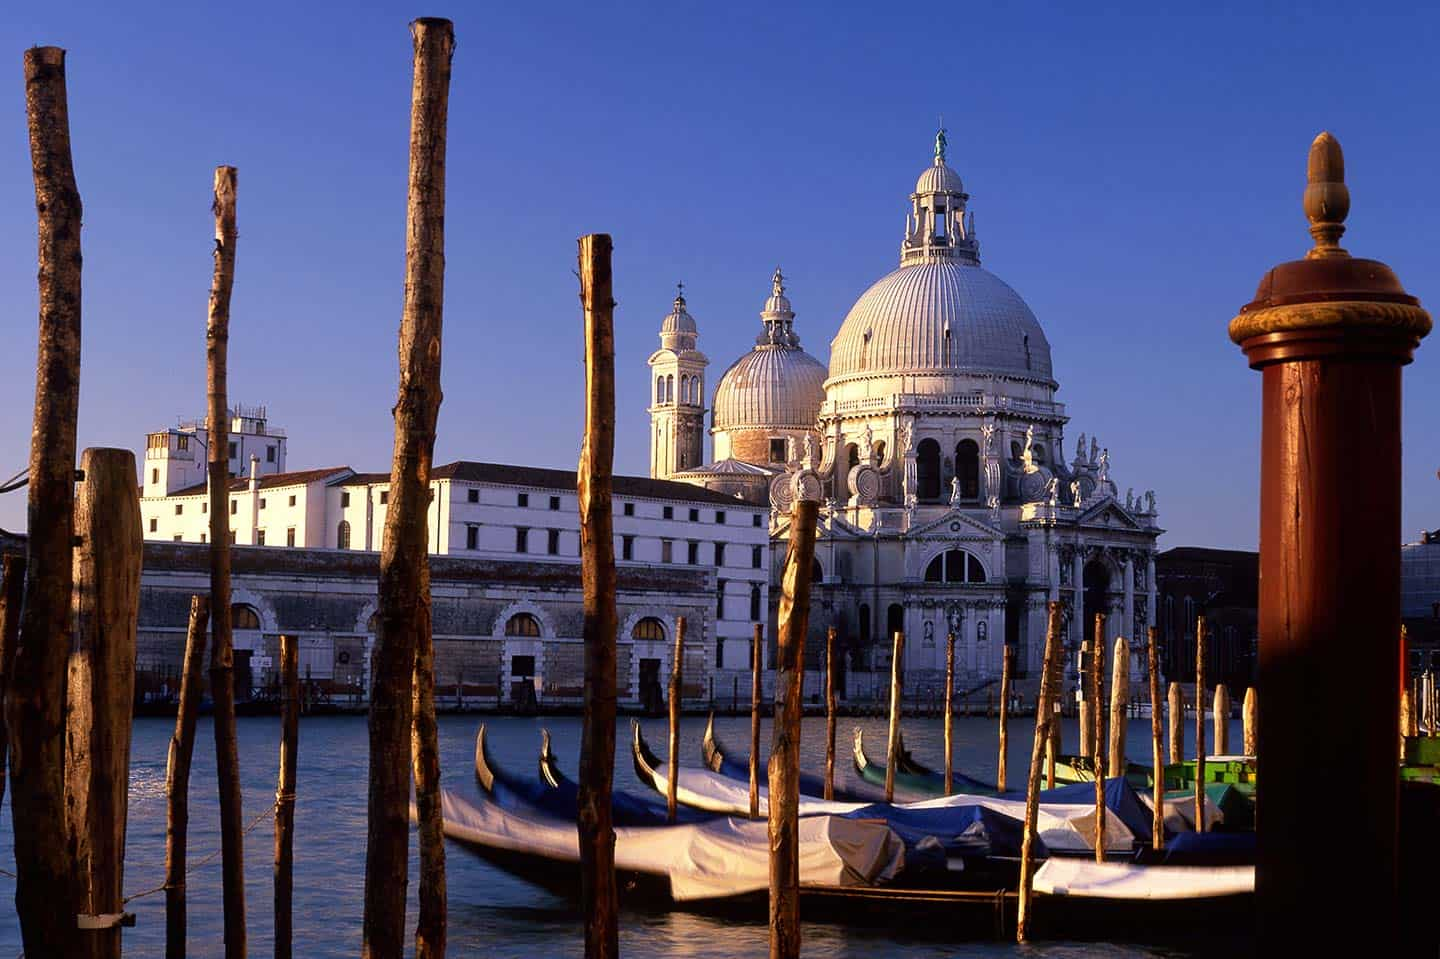 Image of Santa Maria della Salute church